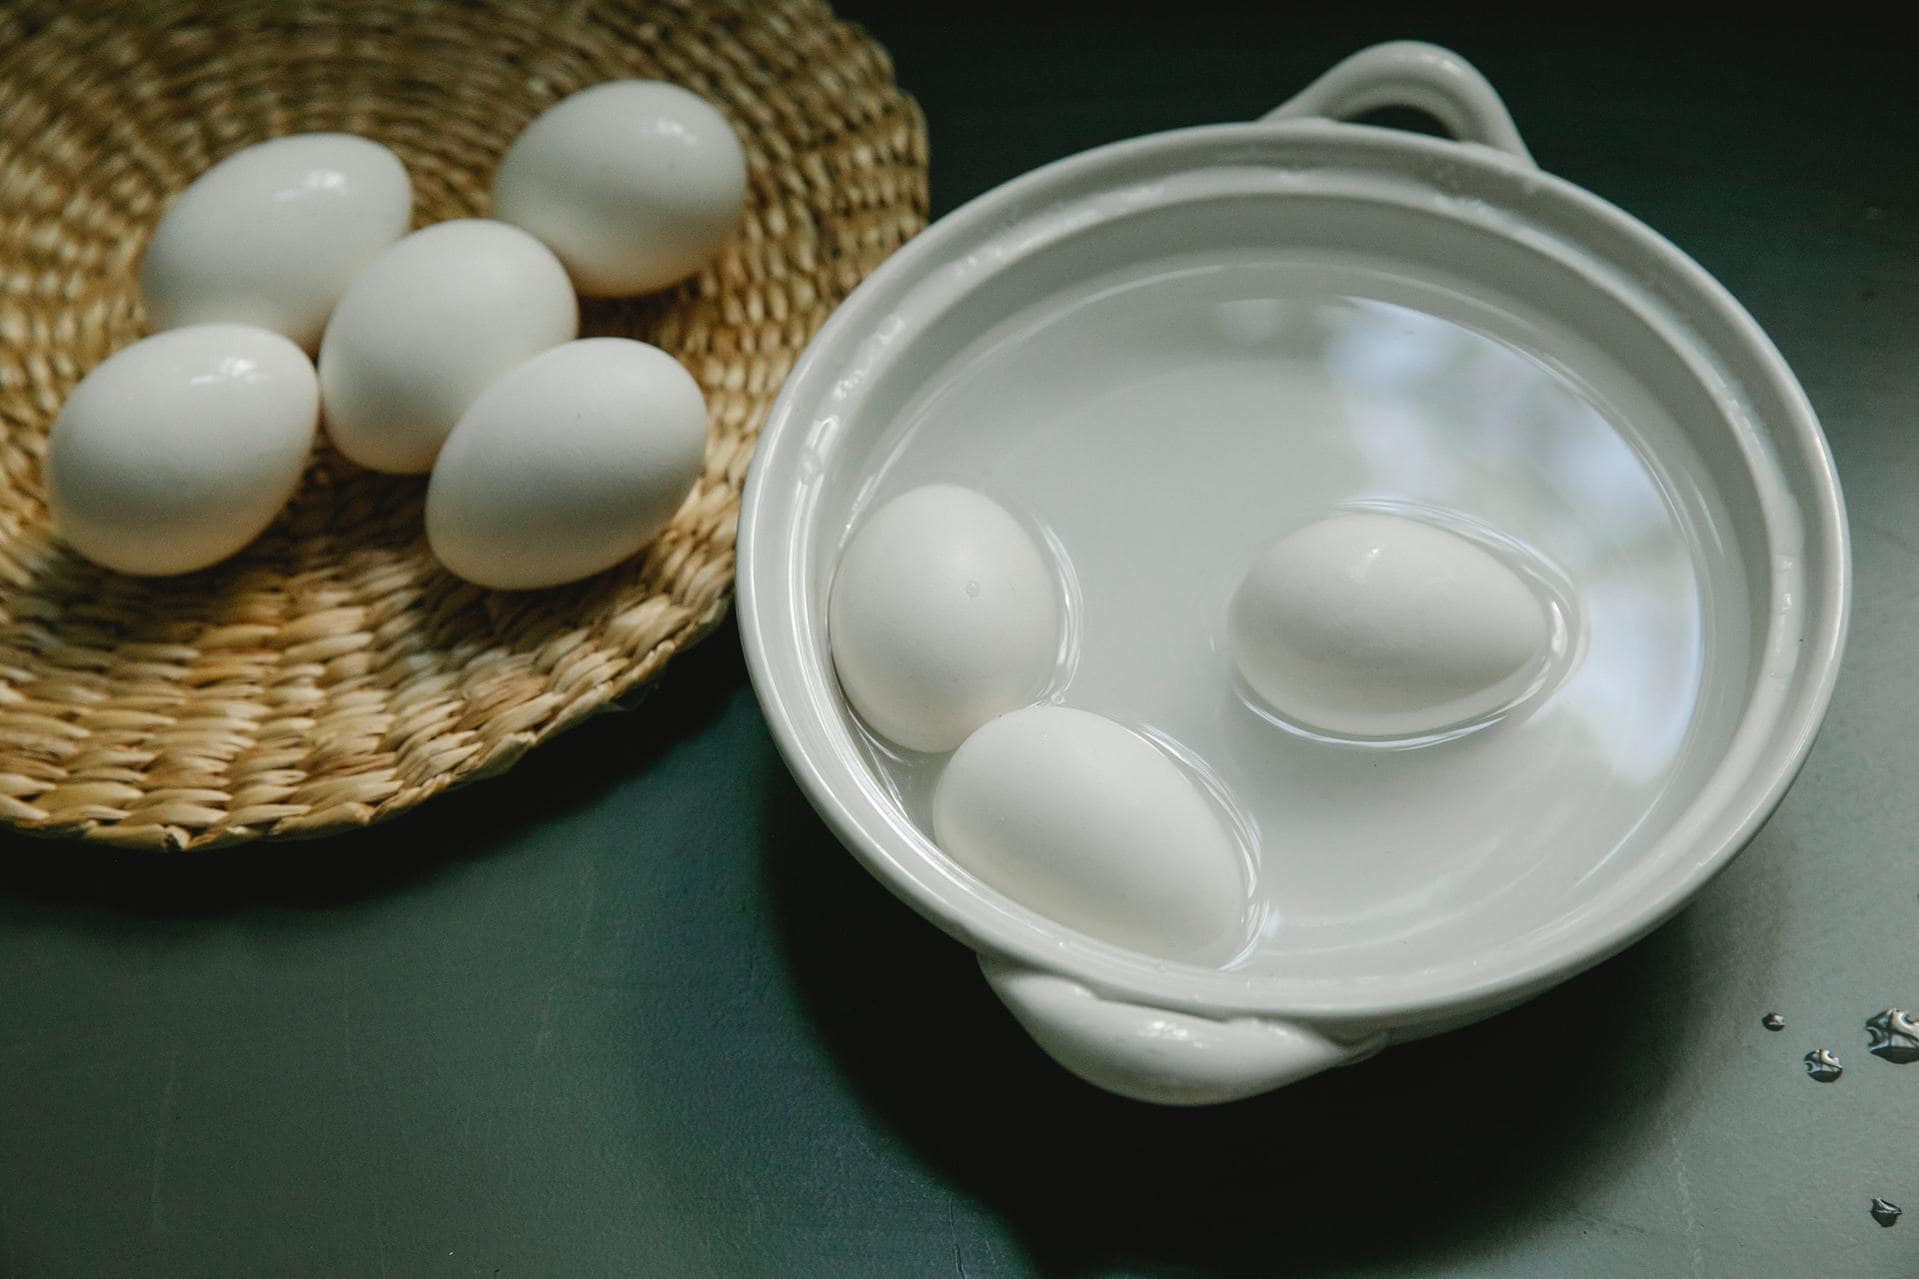 Why is it important to cover your pot while boiling eggs?